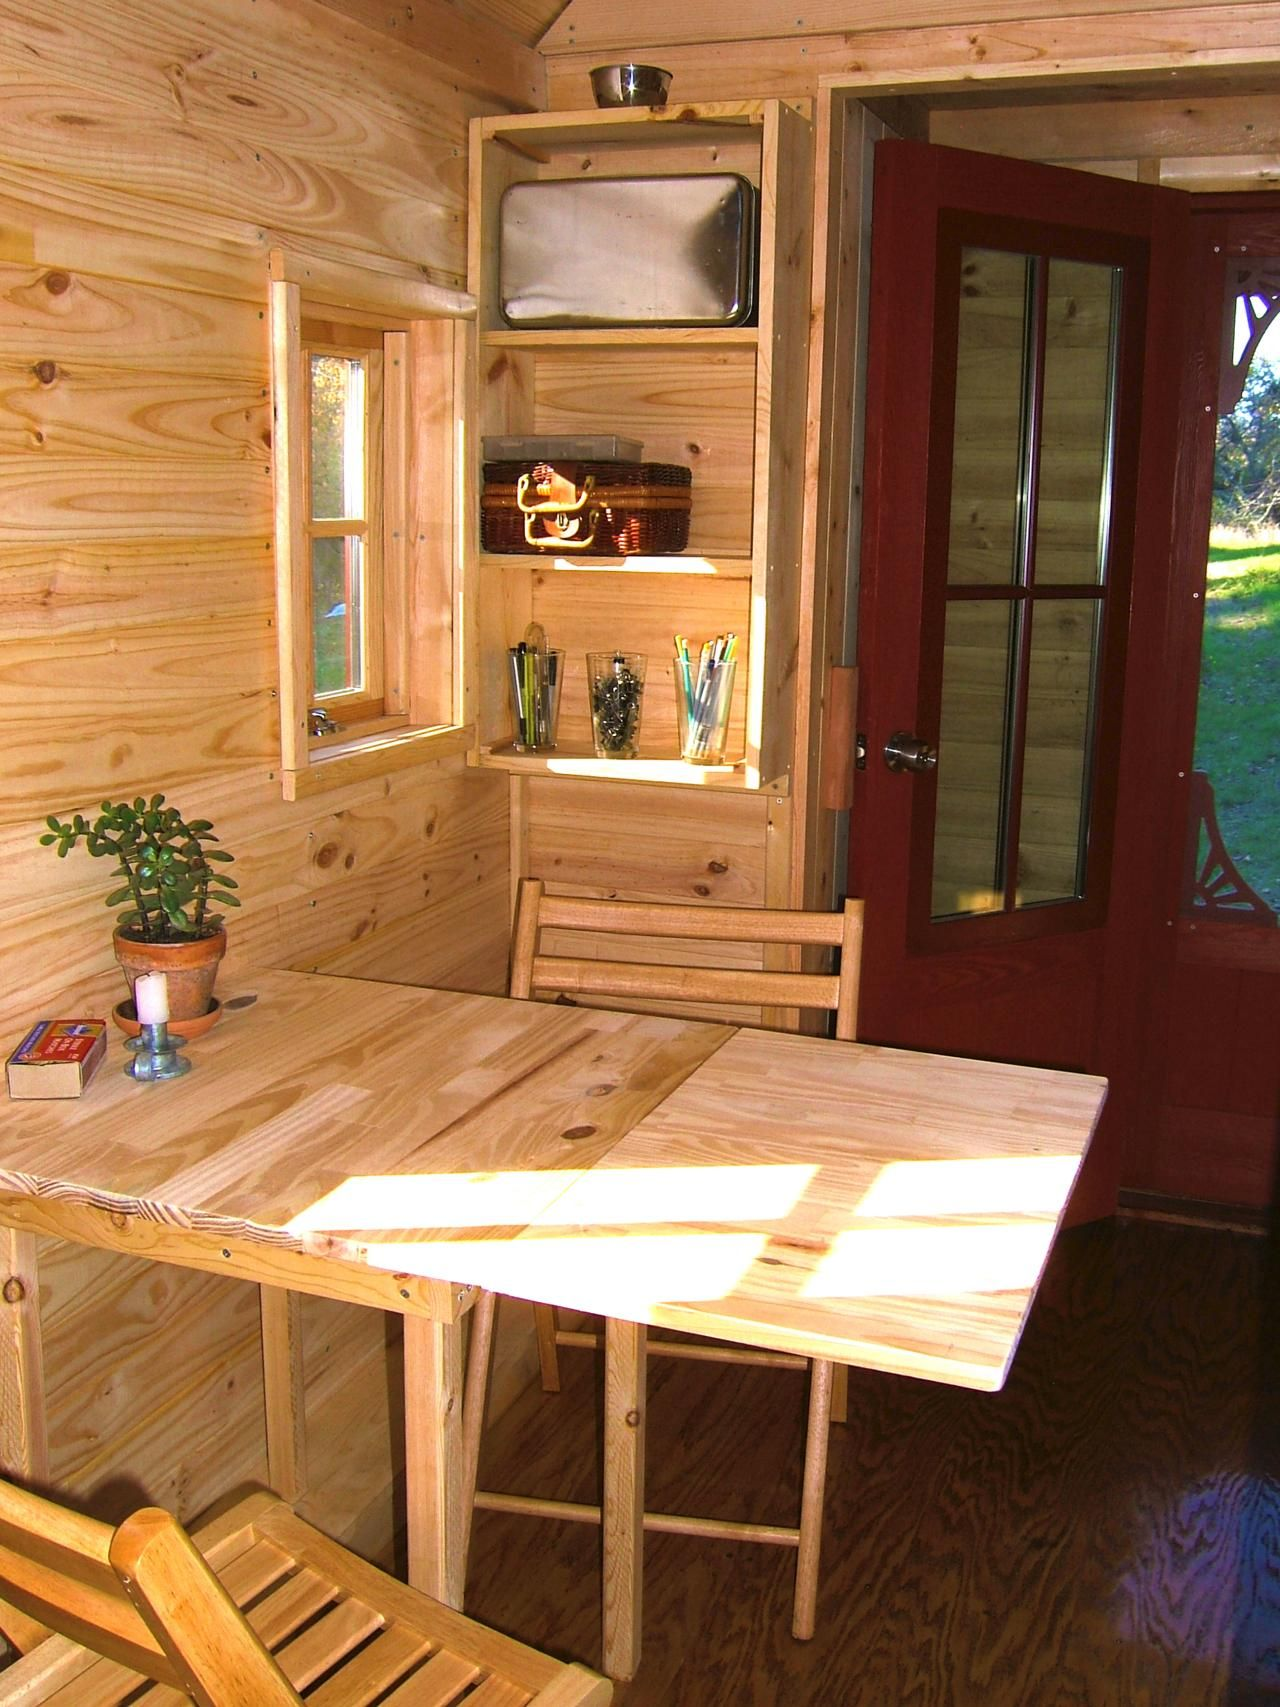 Pictures Of 10 Extreme Tiny Homes From Hgtv Remodels Tiny House Big Living Tiny House Living Tiny House Company